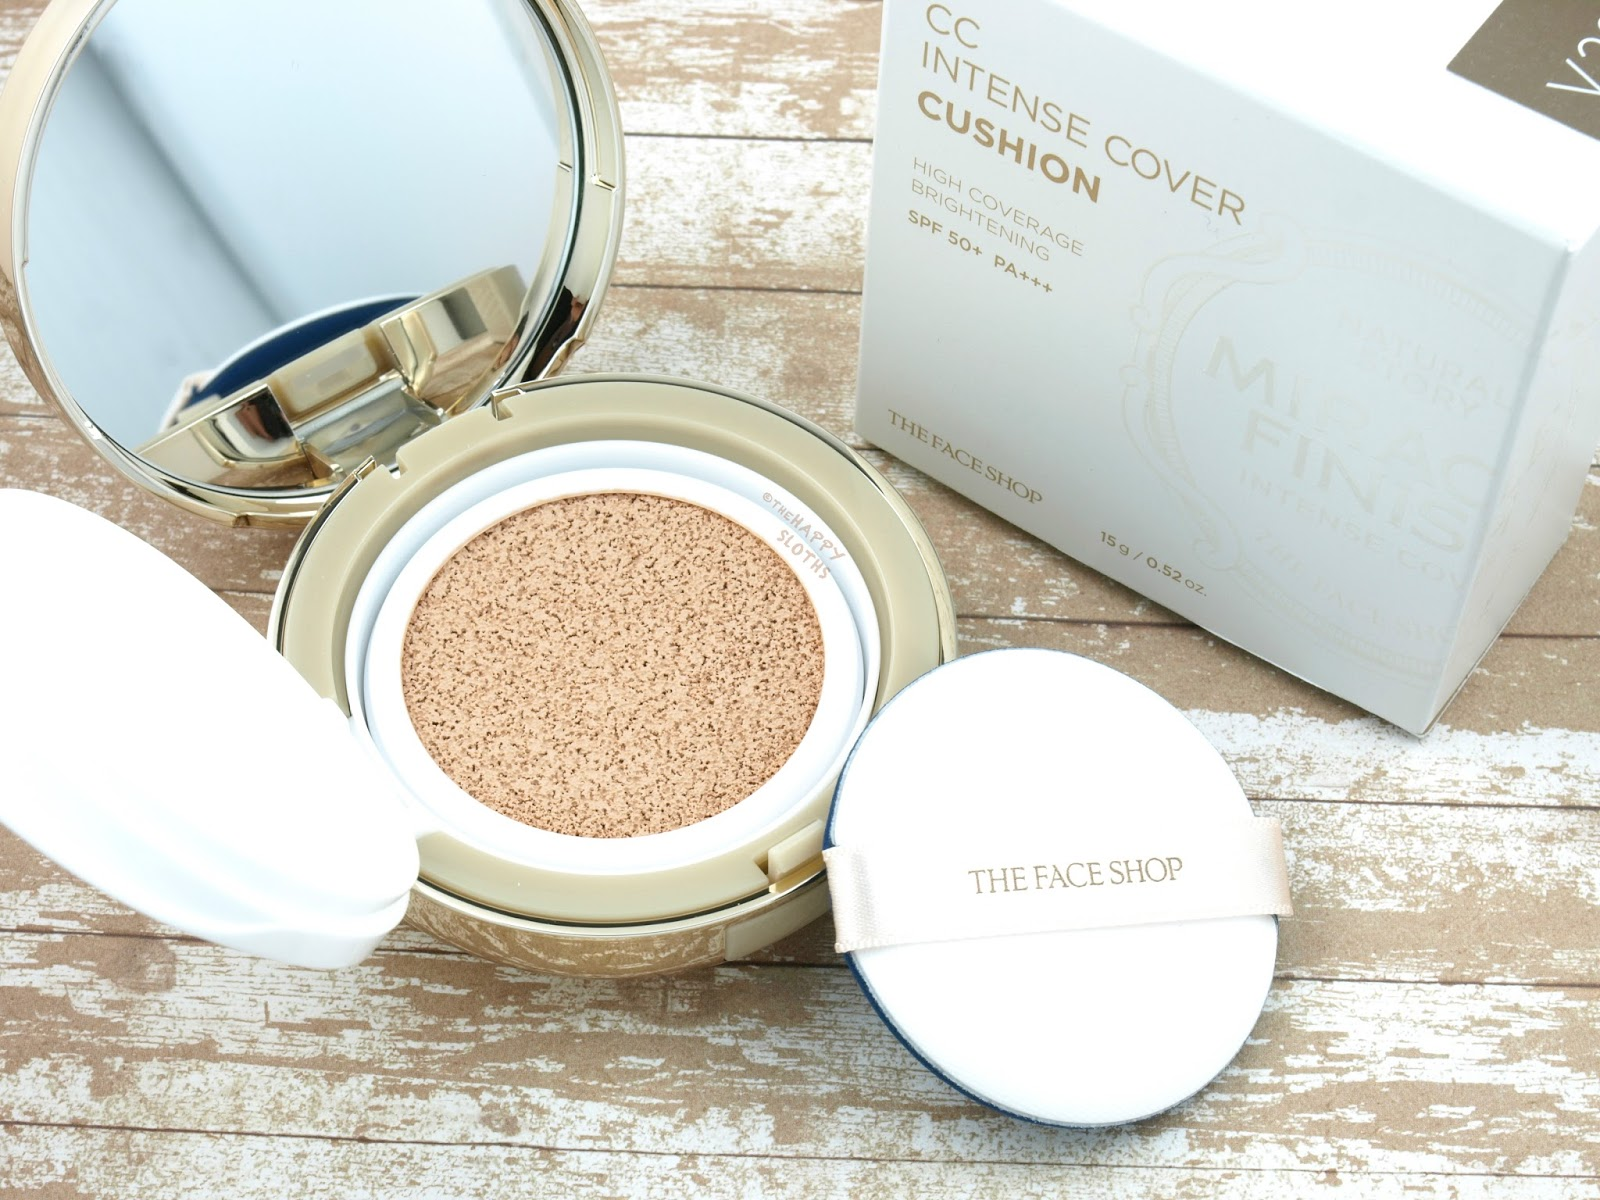 THE FACE SHOP Miracle Finish CC Intense Cover Cushion Foundation: Review and Swatches